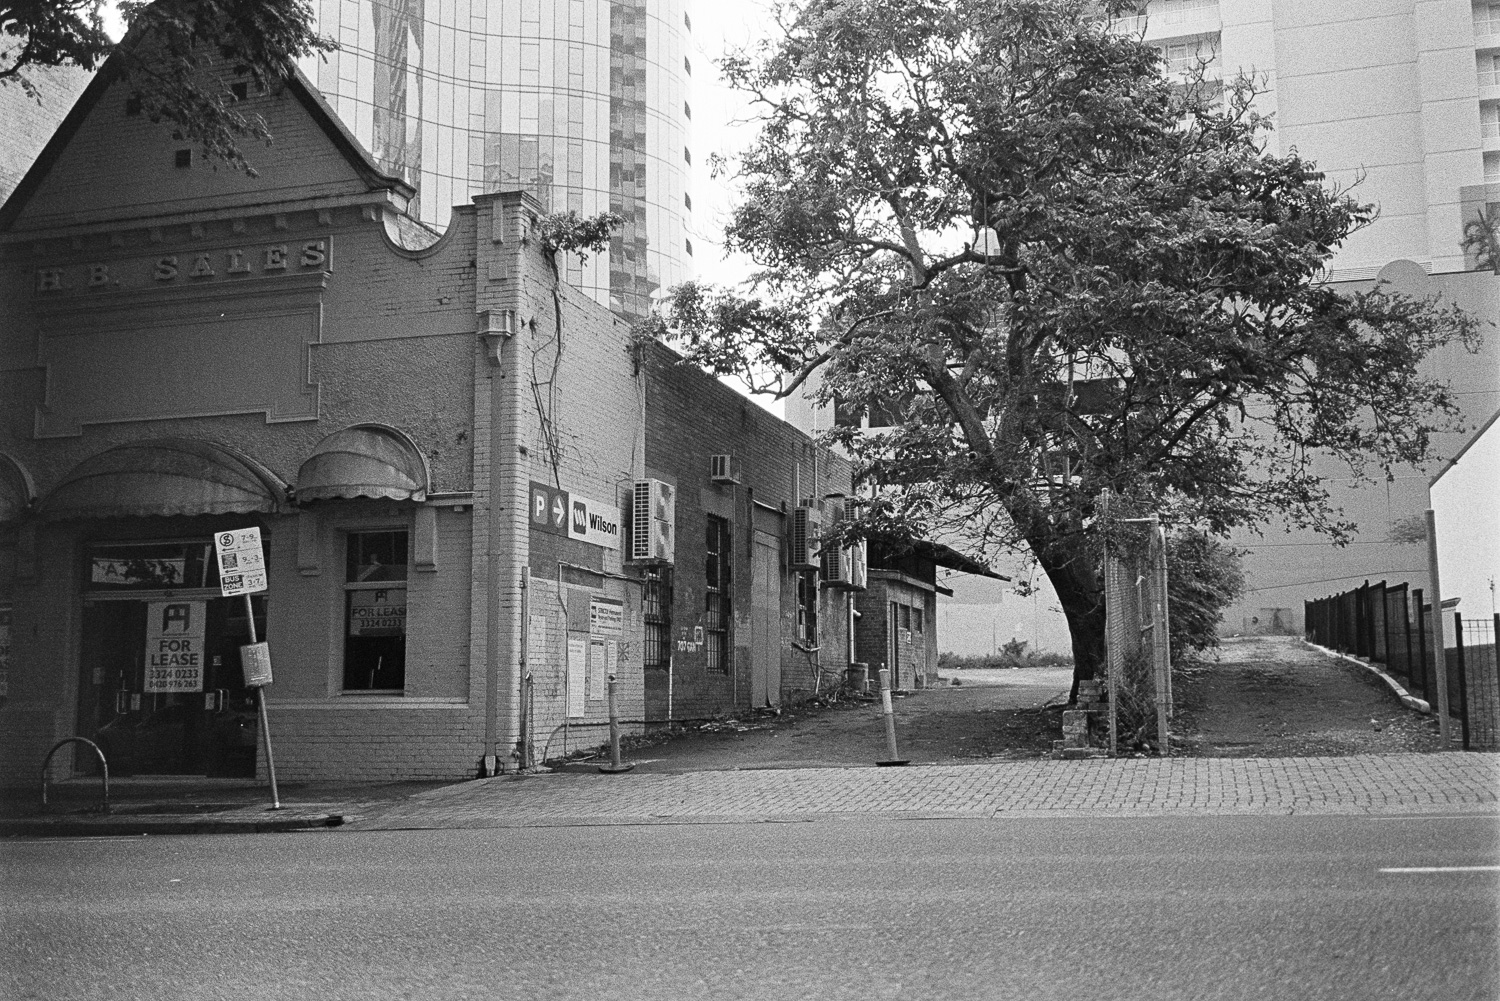 20180326 - Roll 162 - 028-Nick-Bedford,-Photographer-Black and White, Brisbane City, Film, Kodak TRI-X 400, Leica M7, Queensland, Street Photography, Voigtlander 35mm F1.7 Ultron Asph.jpg